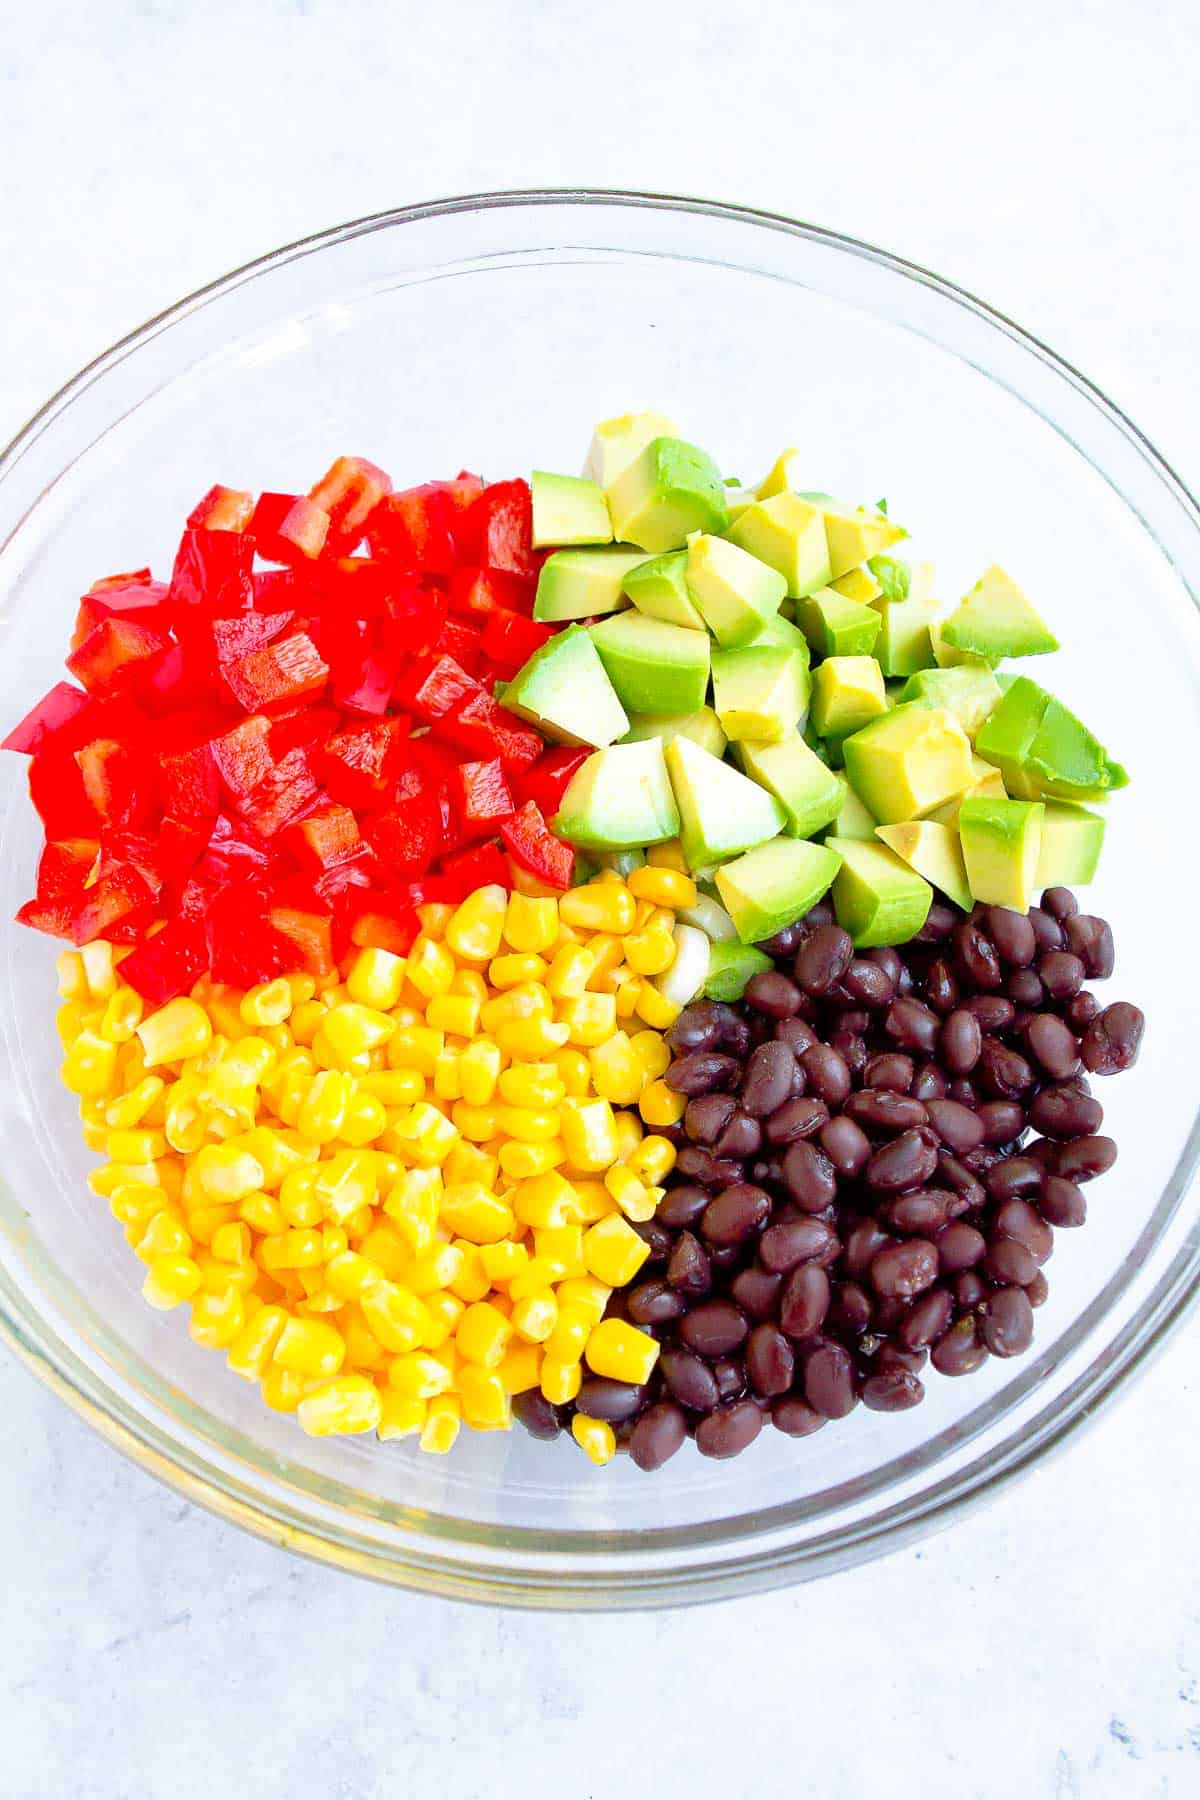 Black beans, corn, avocado and red bell pepper in a glass bowl.